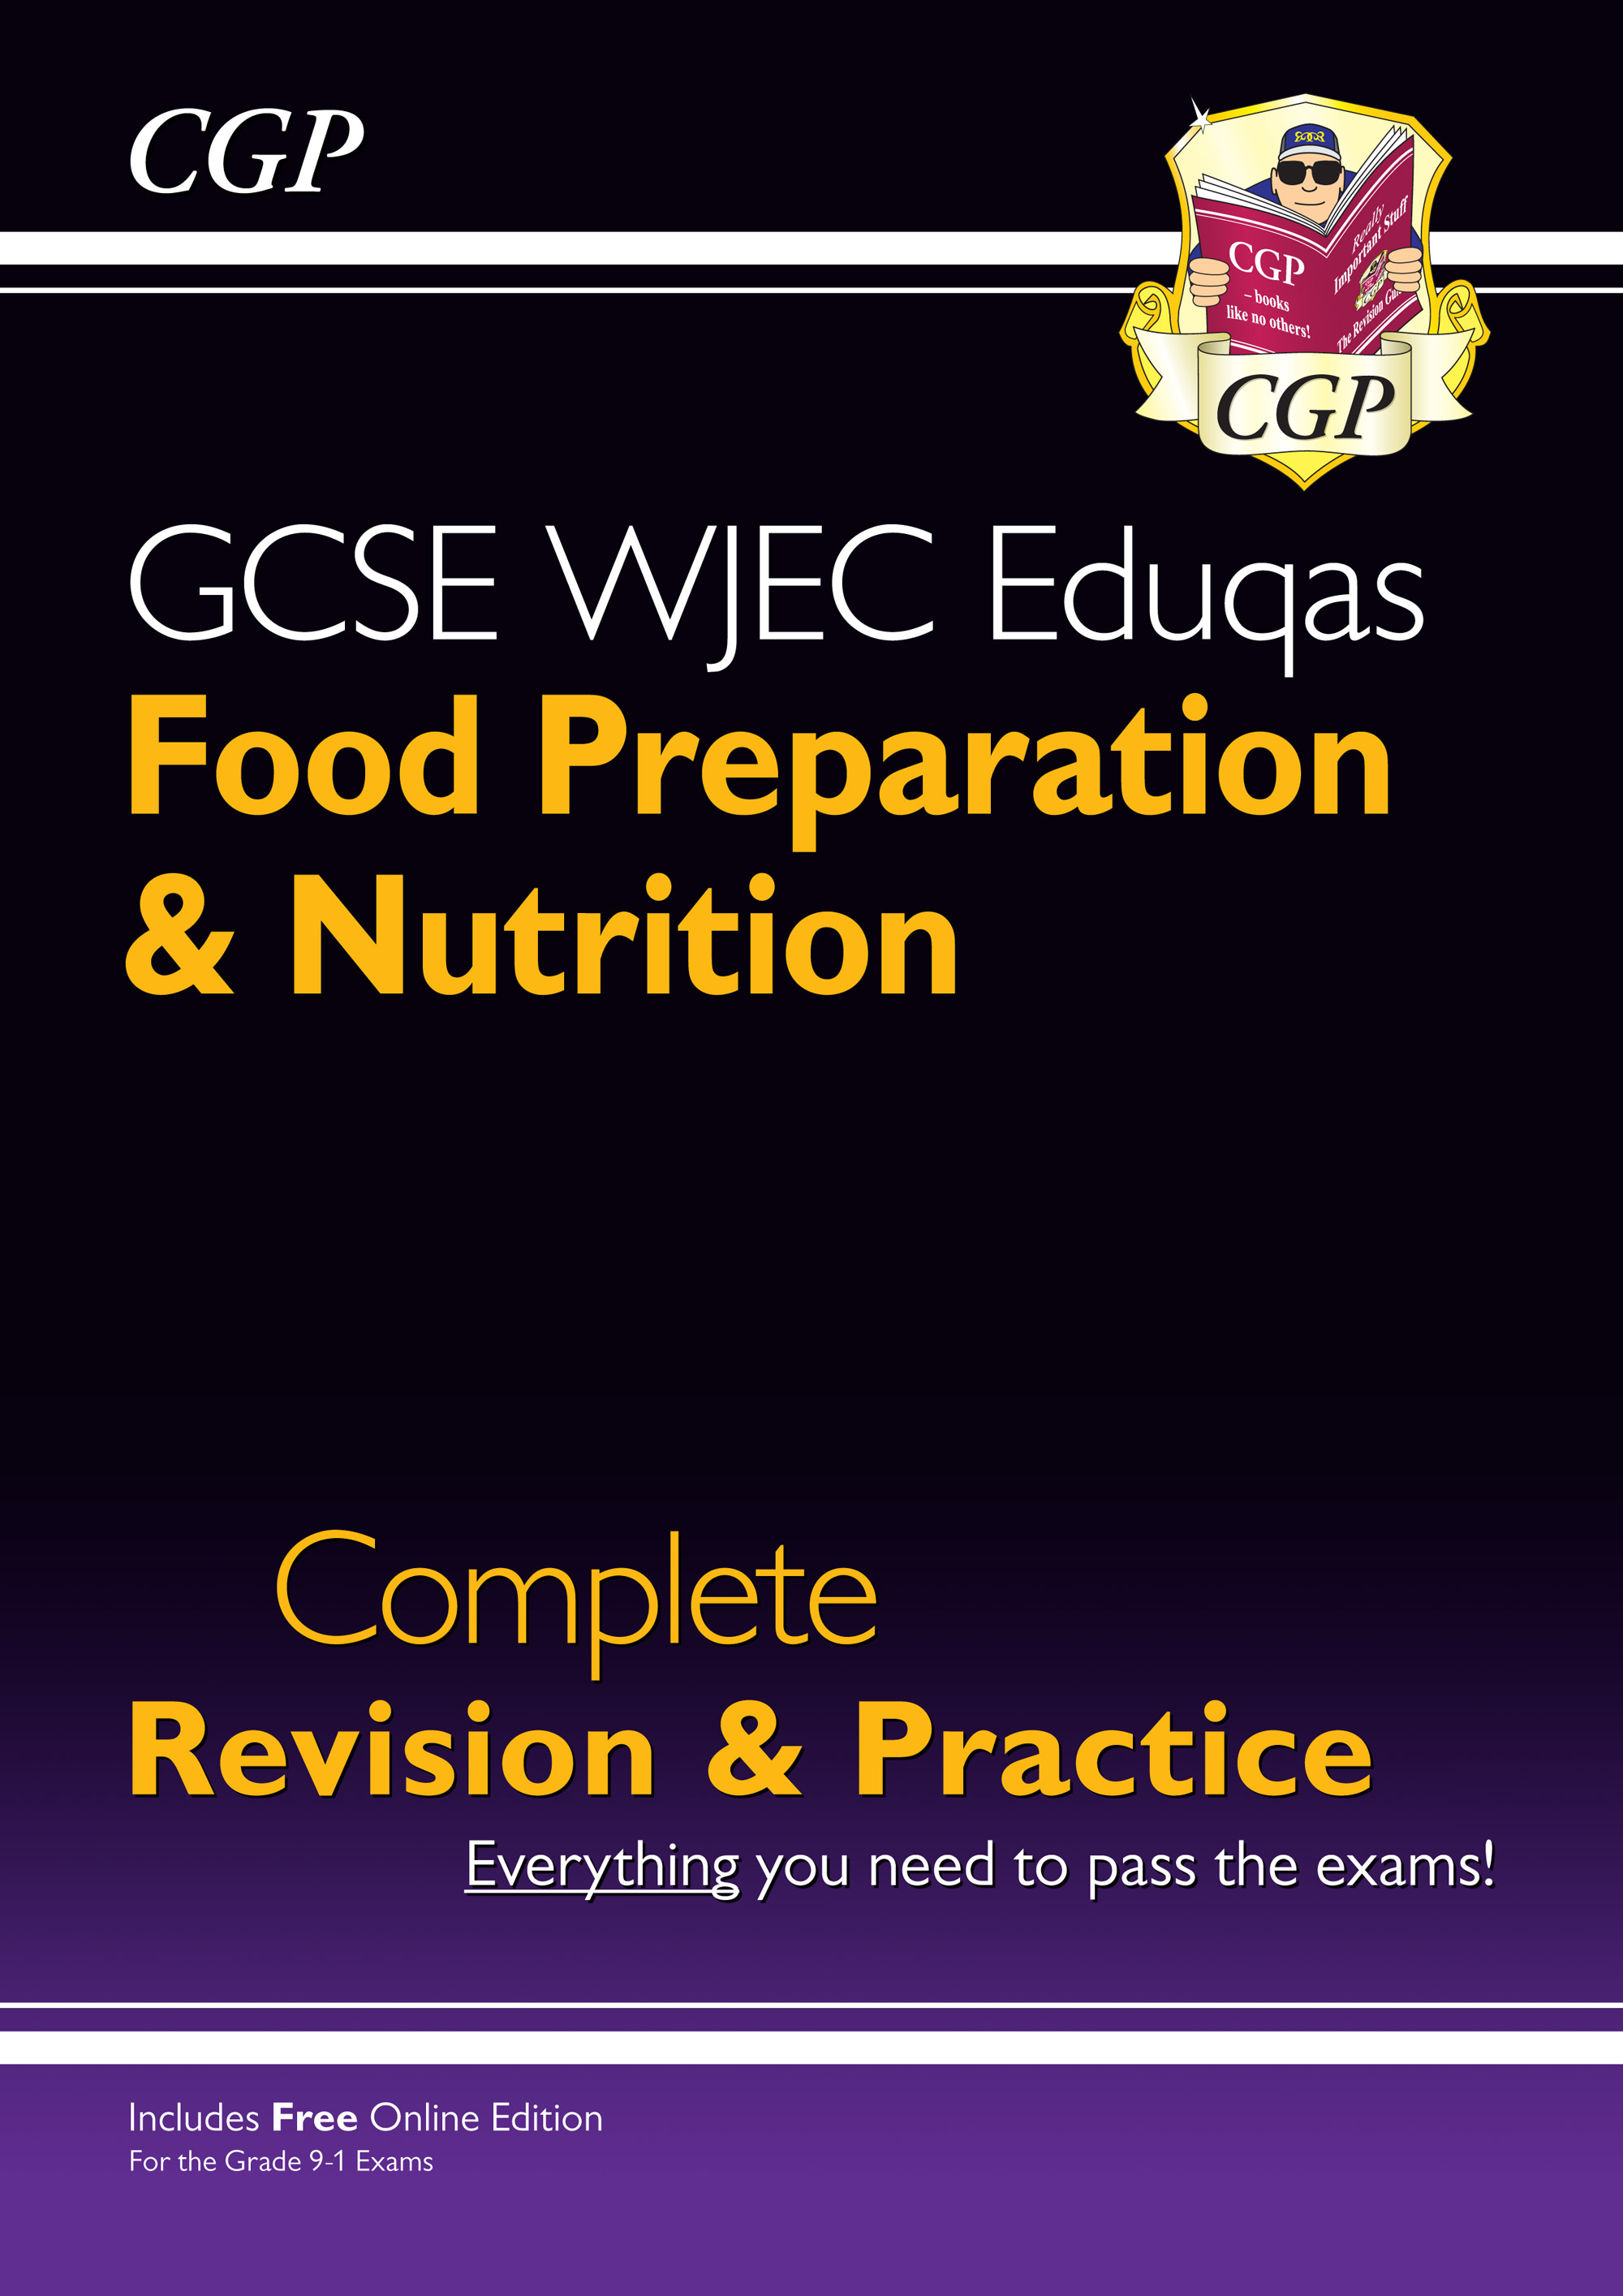 FNWS41 - New 9-1 GCSE Food Preparation & Nutrition WJEC Eduqas Complete Revision & Practice (with On